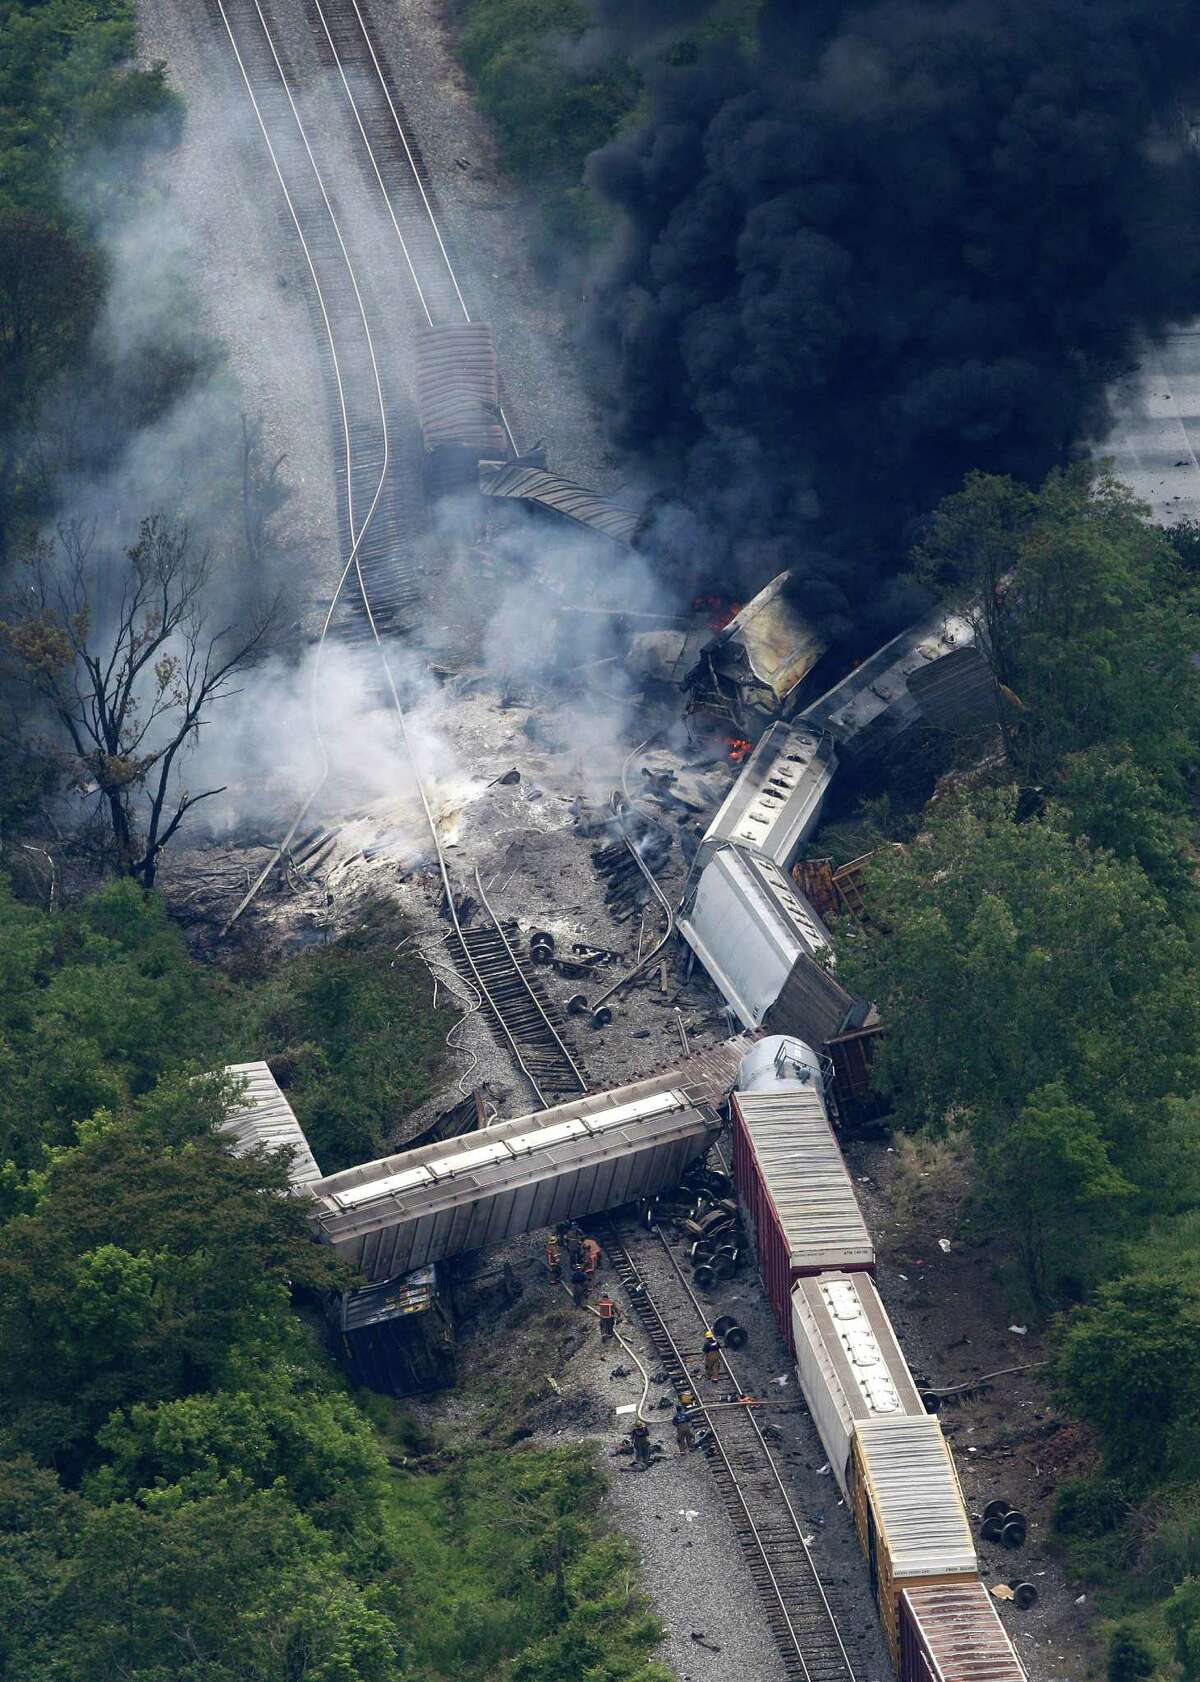 A fire burns at the site of a CSX freight train derailment, Tuesday, May 28, 2013, in White Marsh, Md., where fire officials say the train crashed into a trash truck, causing an explosion that rattled homes at least a half-mile away and collapsed nearby buildings, setting them on fire.